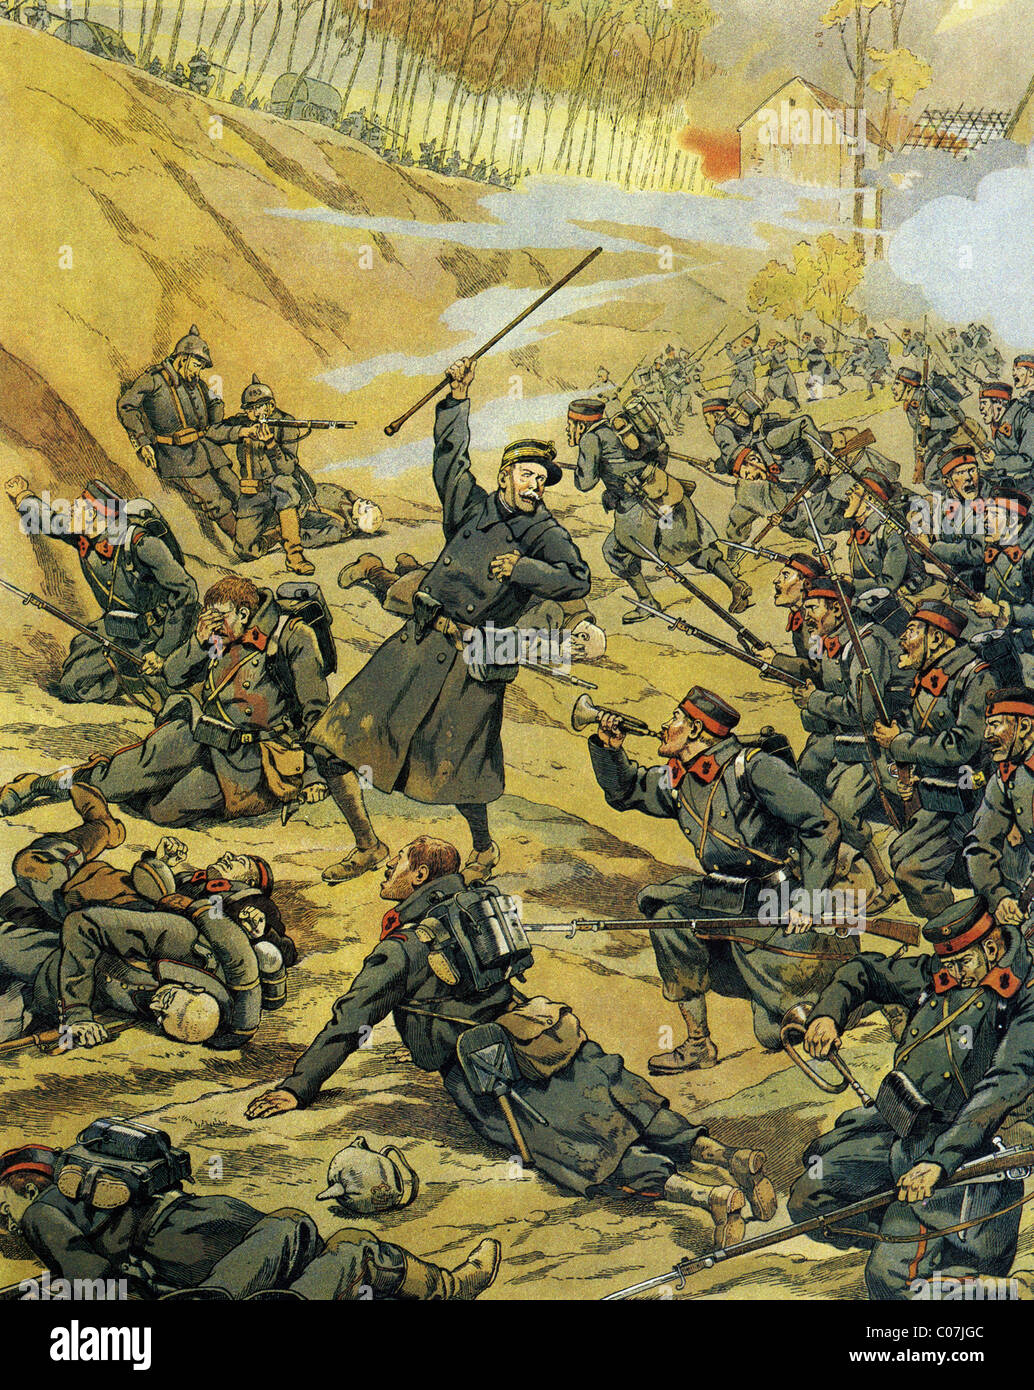 JOB (Jacques Onfroy de Breville) - French illustrator (1858 - 1931) First World War - 1914-1918 : Battle in Belgium - Stock Image